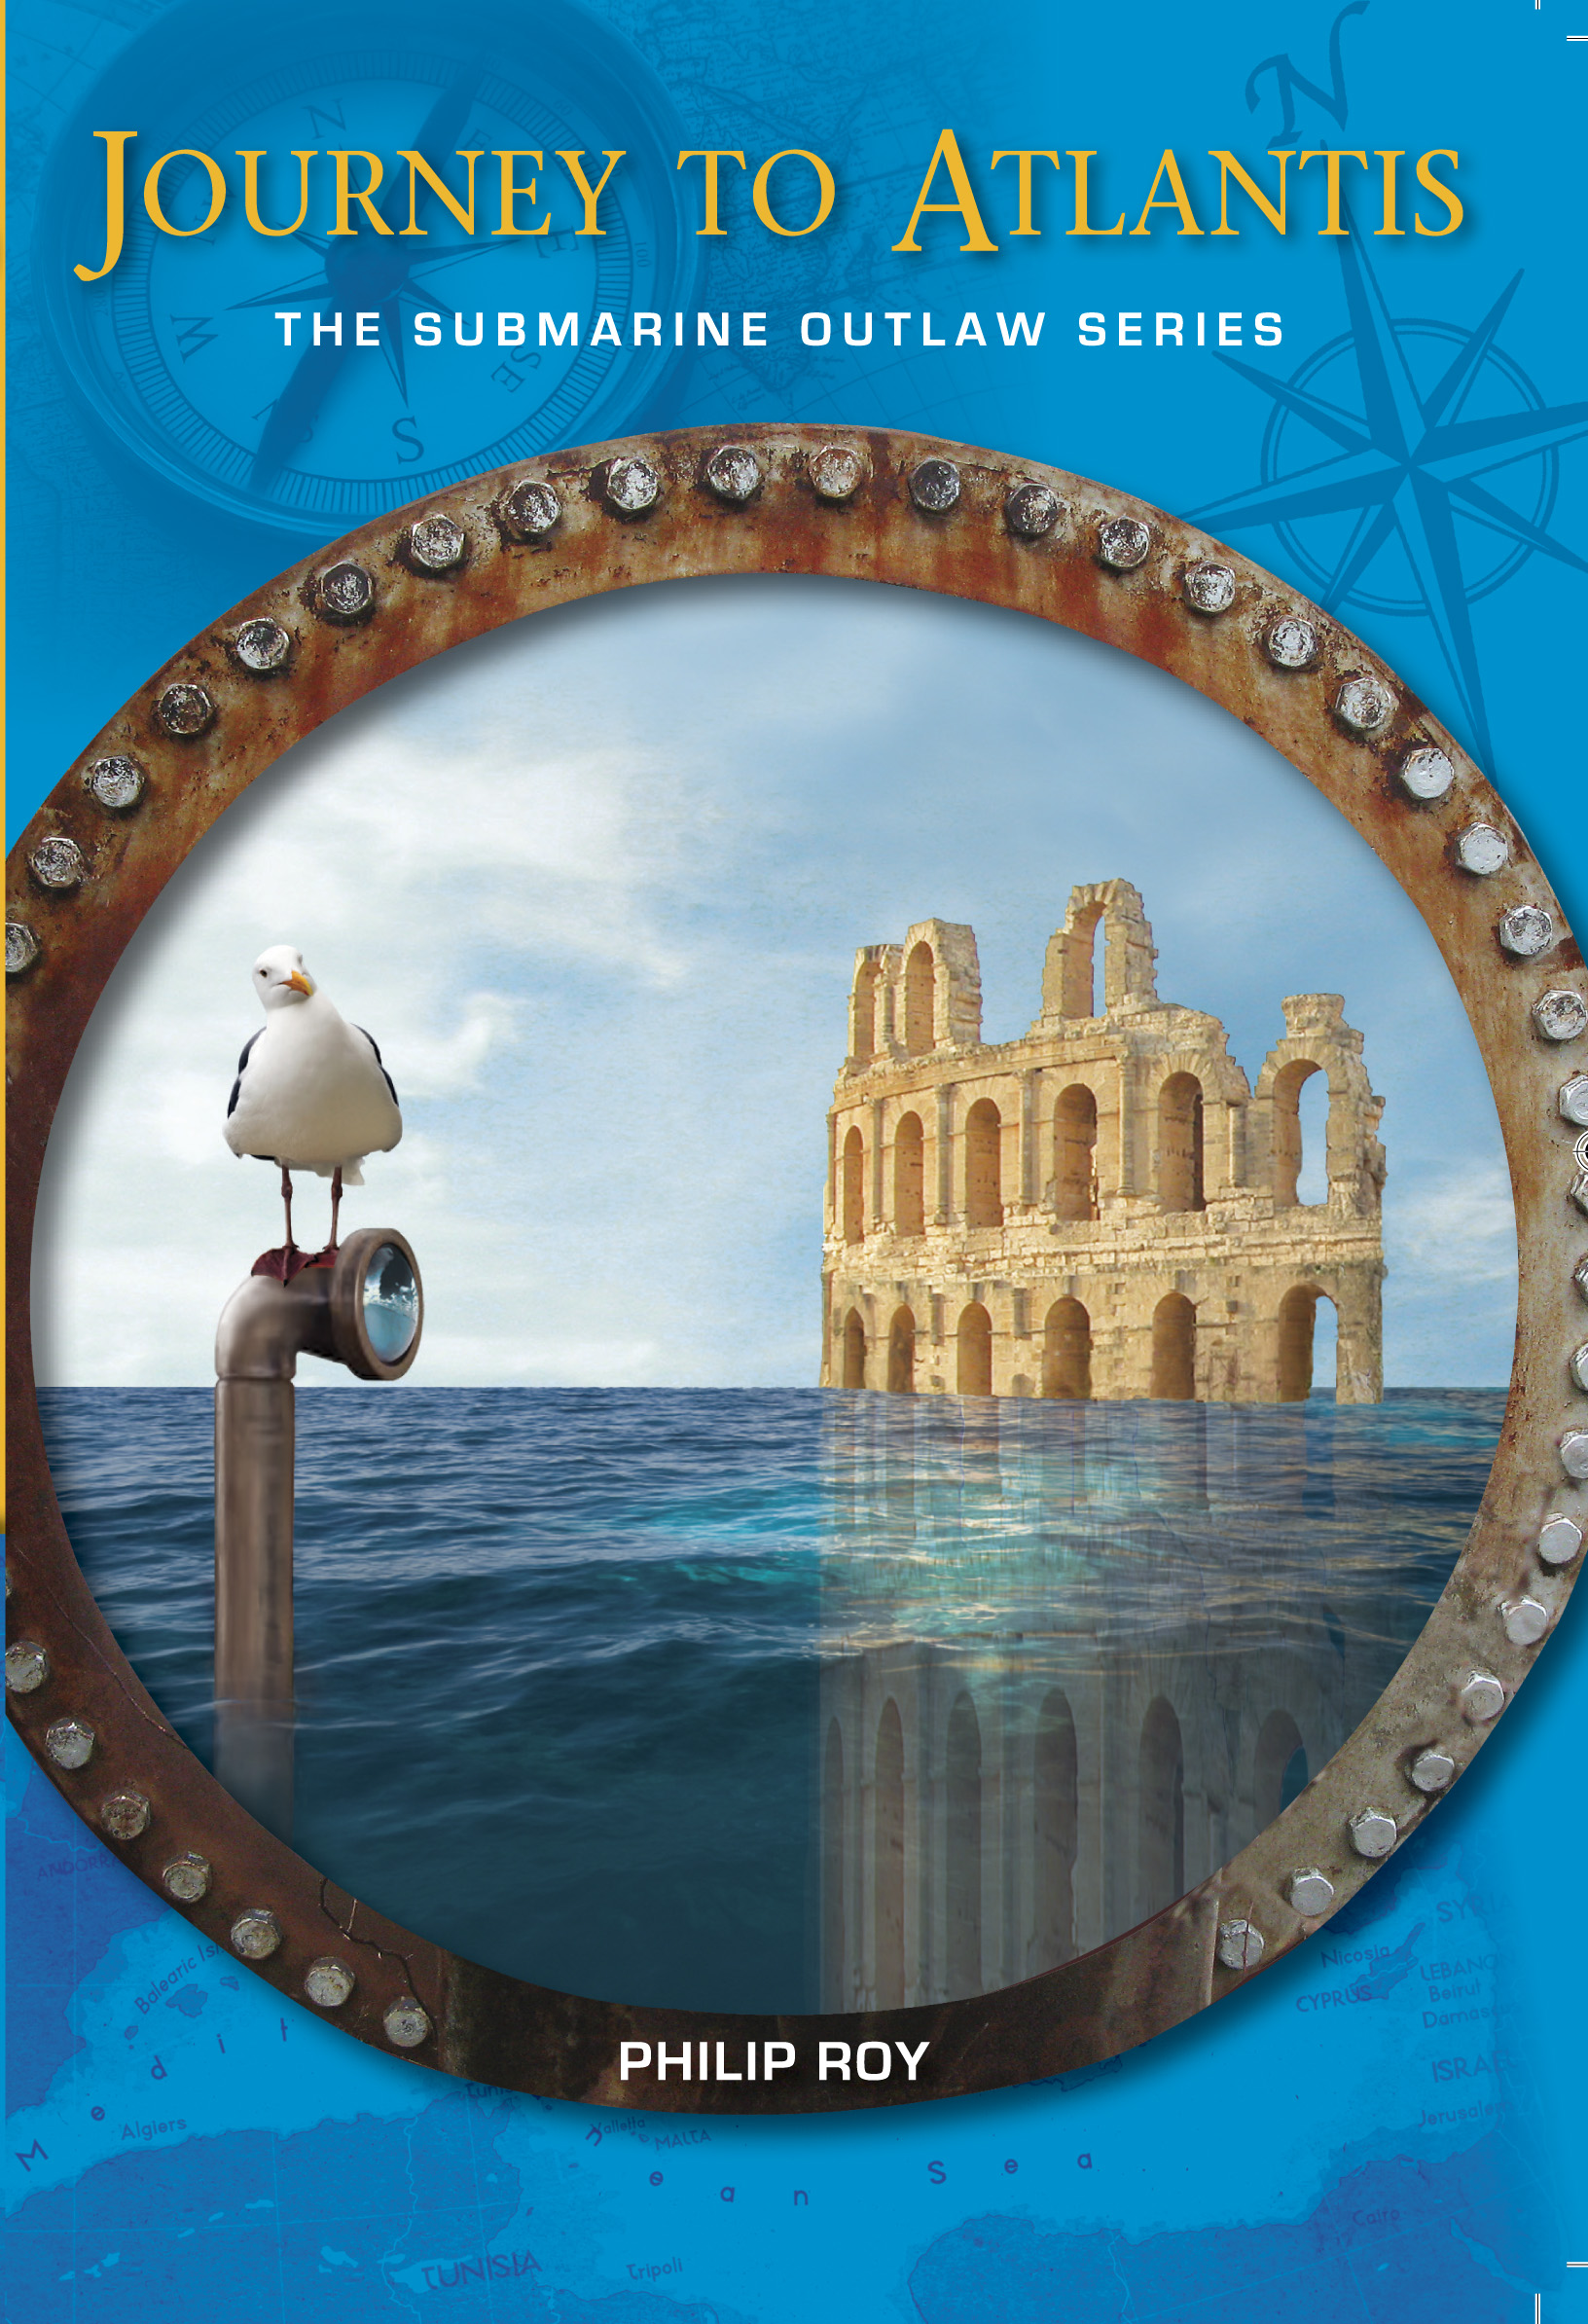 Book 2: Journey To Atlantis Ronsdale Press, Vancouver, 2009 Isbn:  9781553800767 Ebook Isbn: 9781553800743